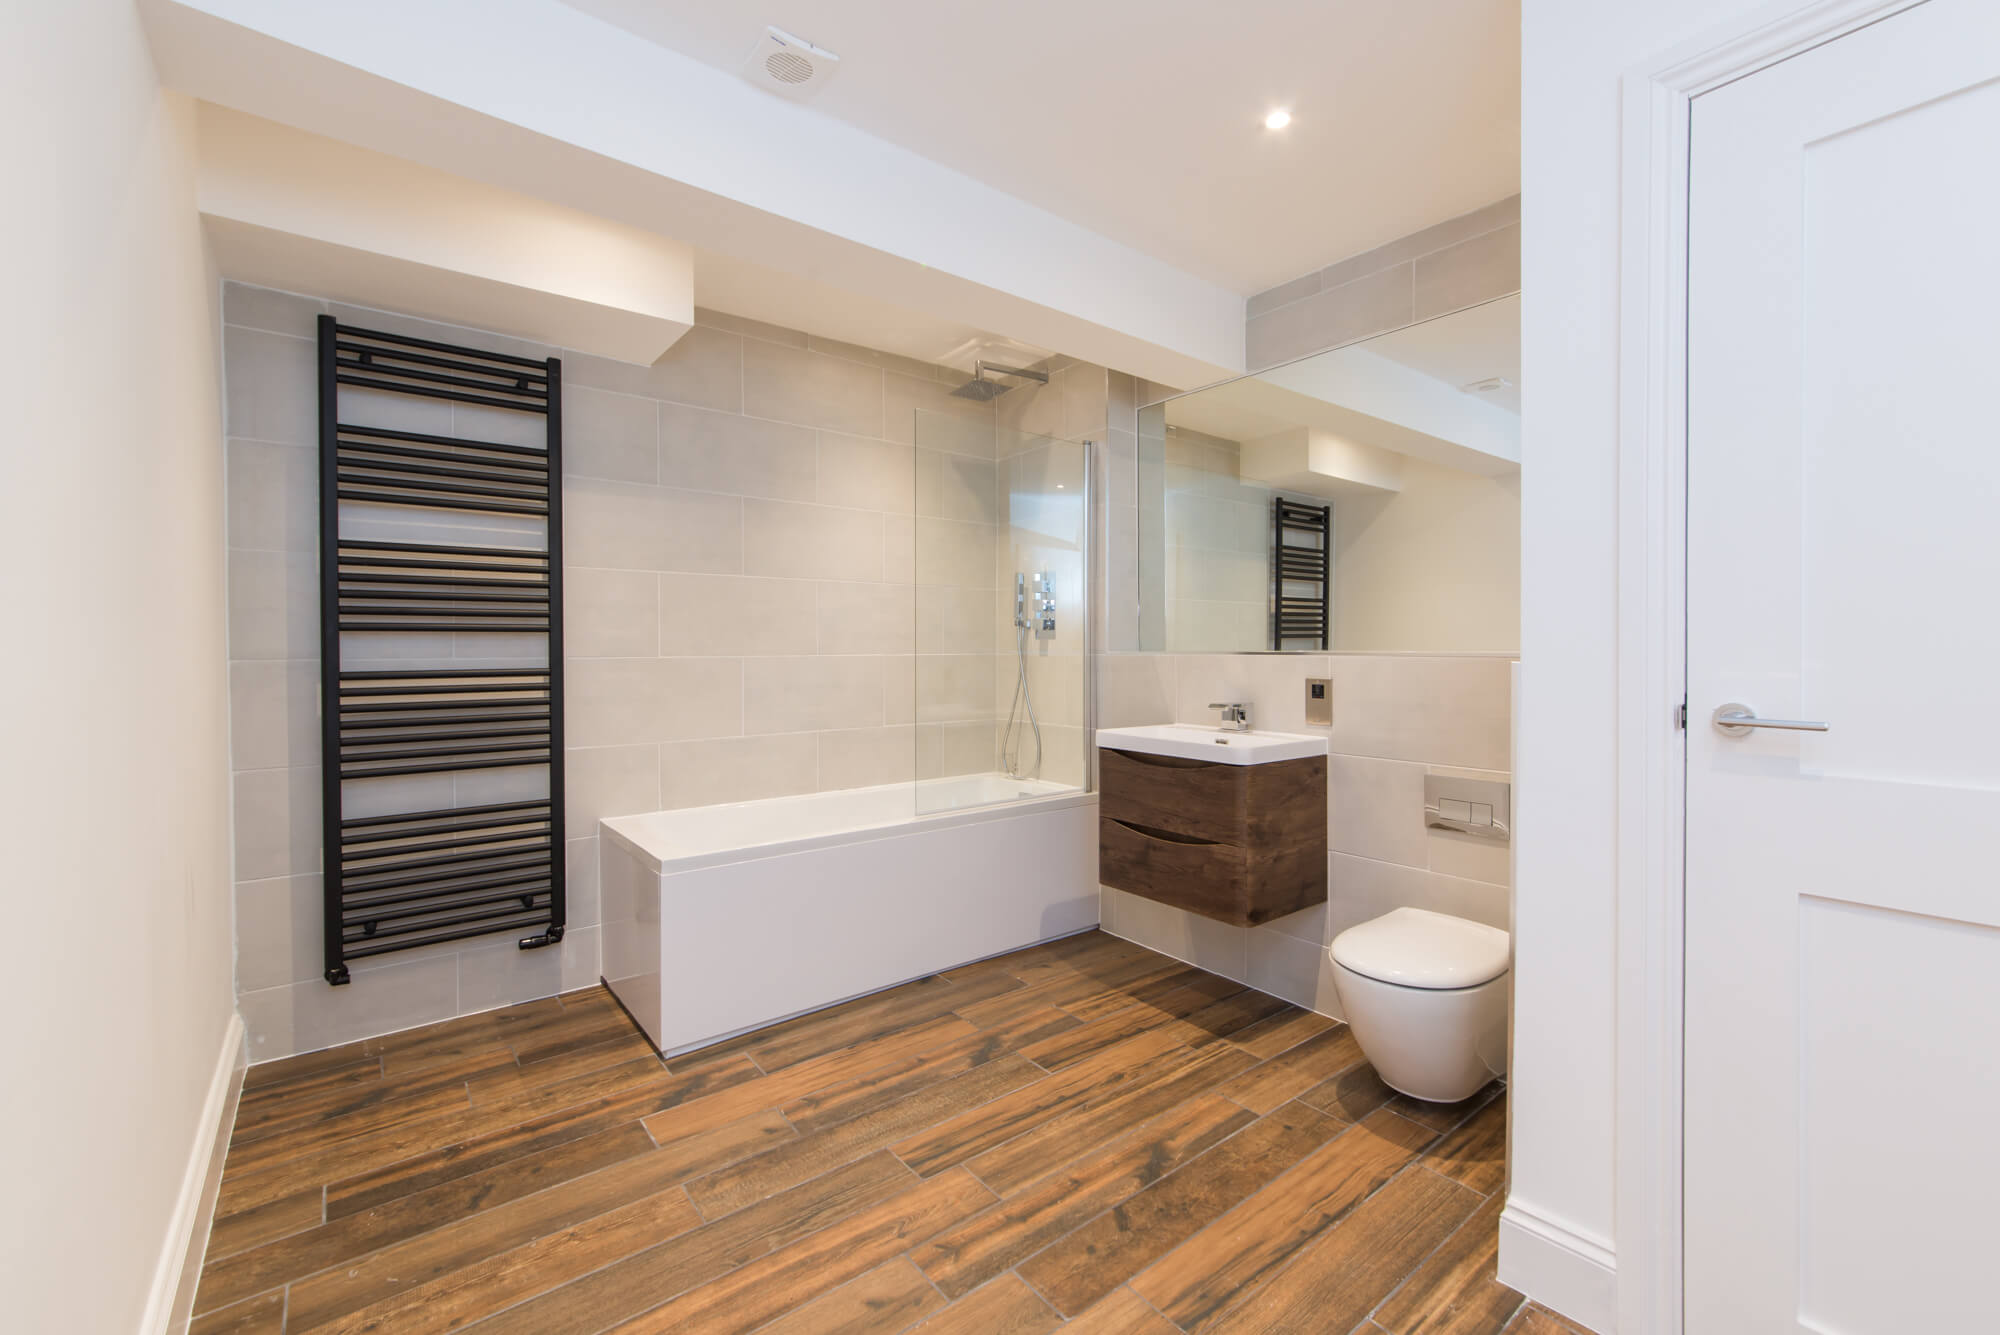 contemproary, spacious bathroom with heated towel rail and wall hung toilet